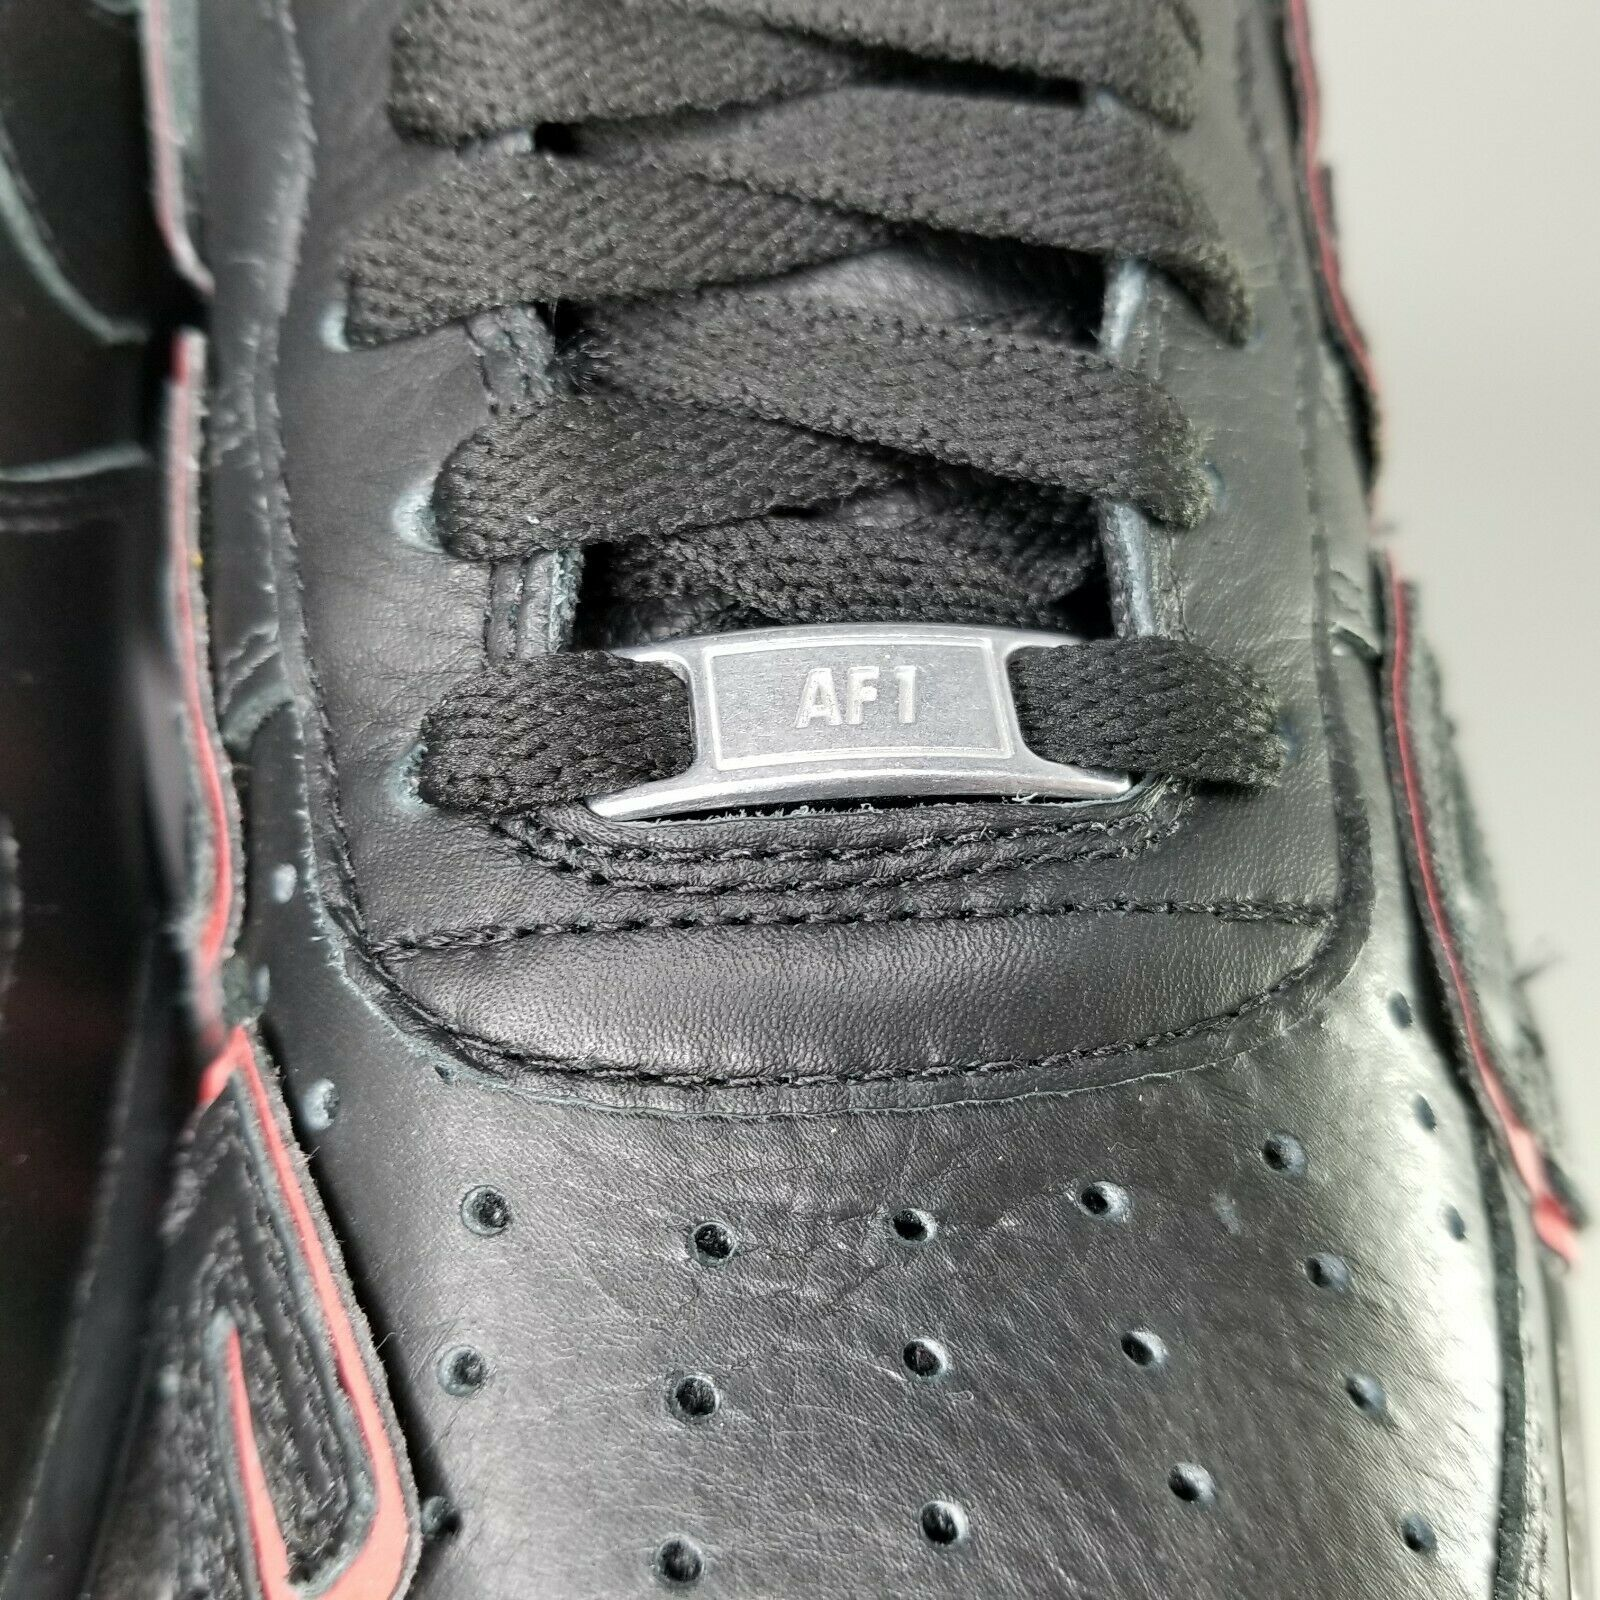 Nike Air Force 1 Low x CPFM Athletic Shoes Mens Size 8.5 Black Blue Red Sunshine image 7